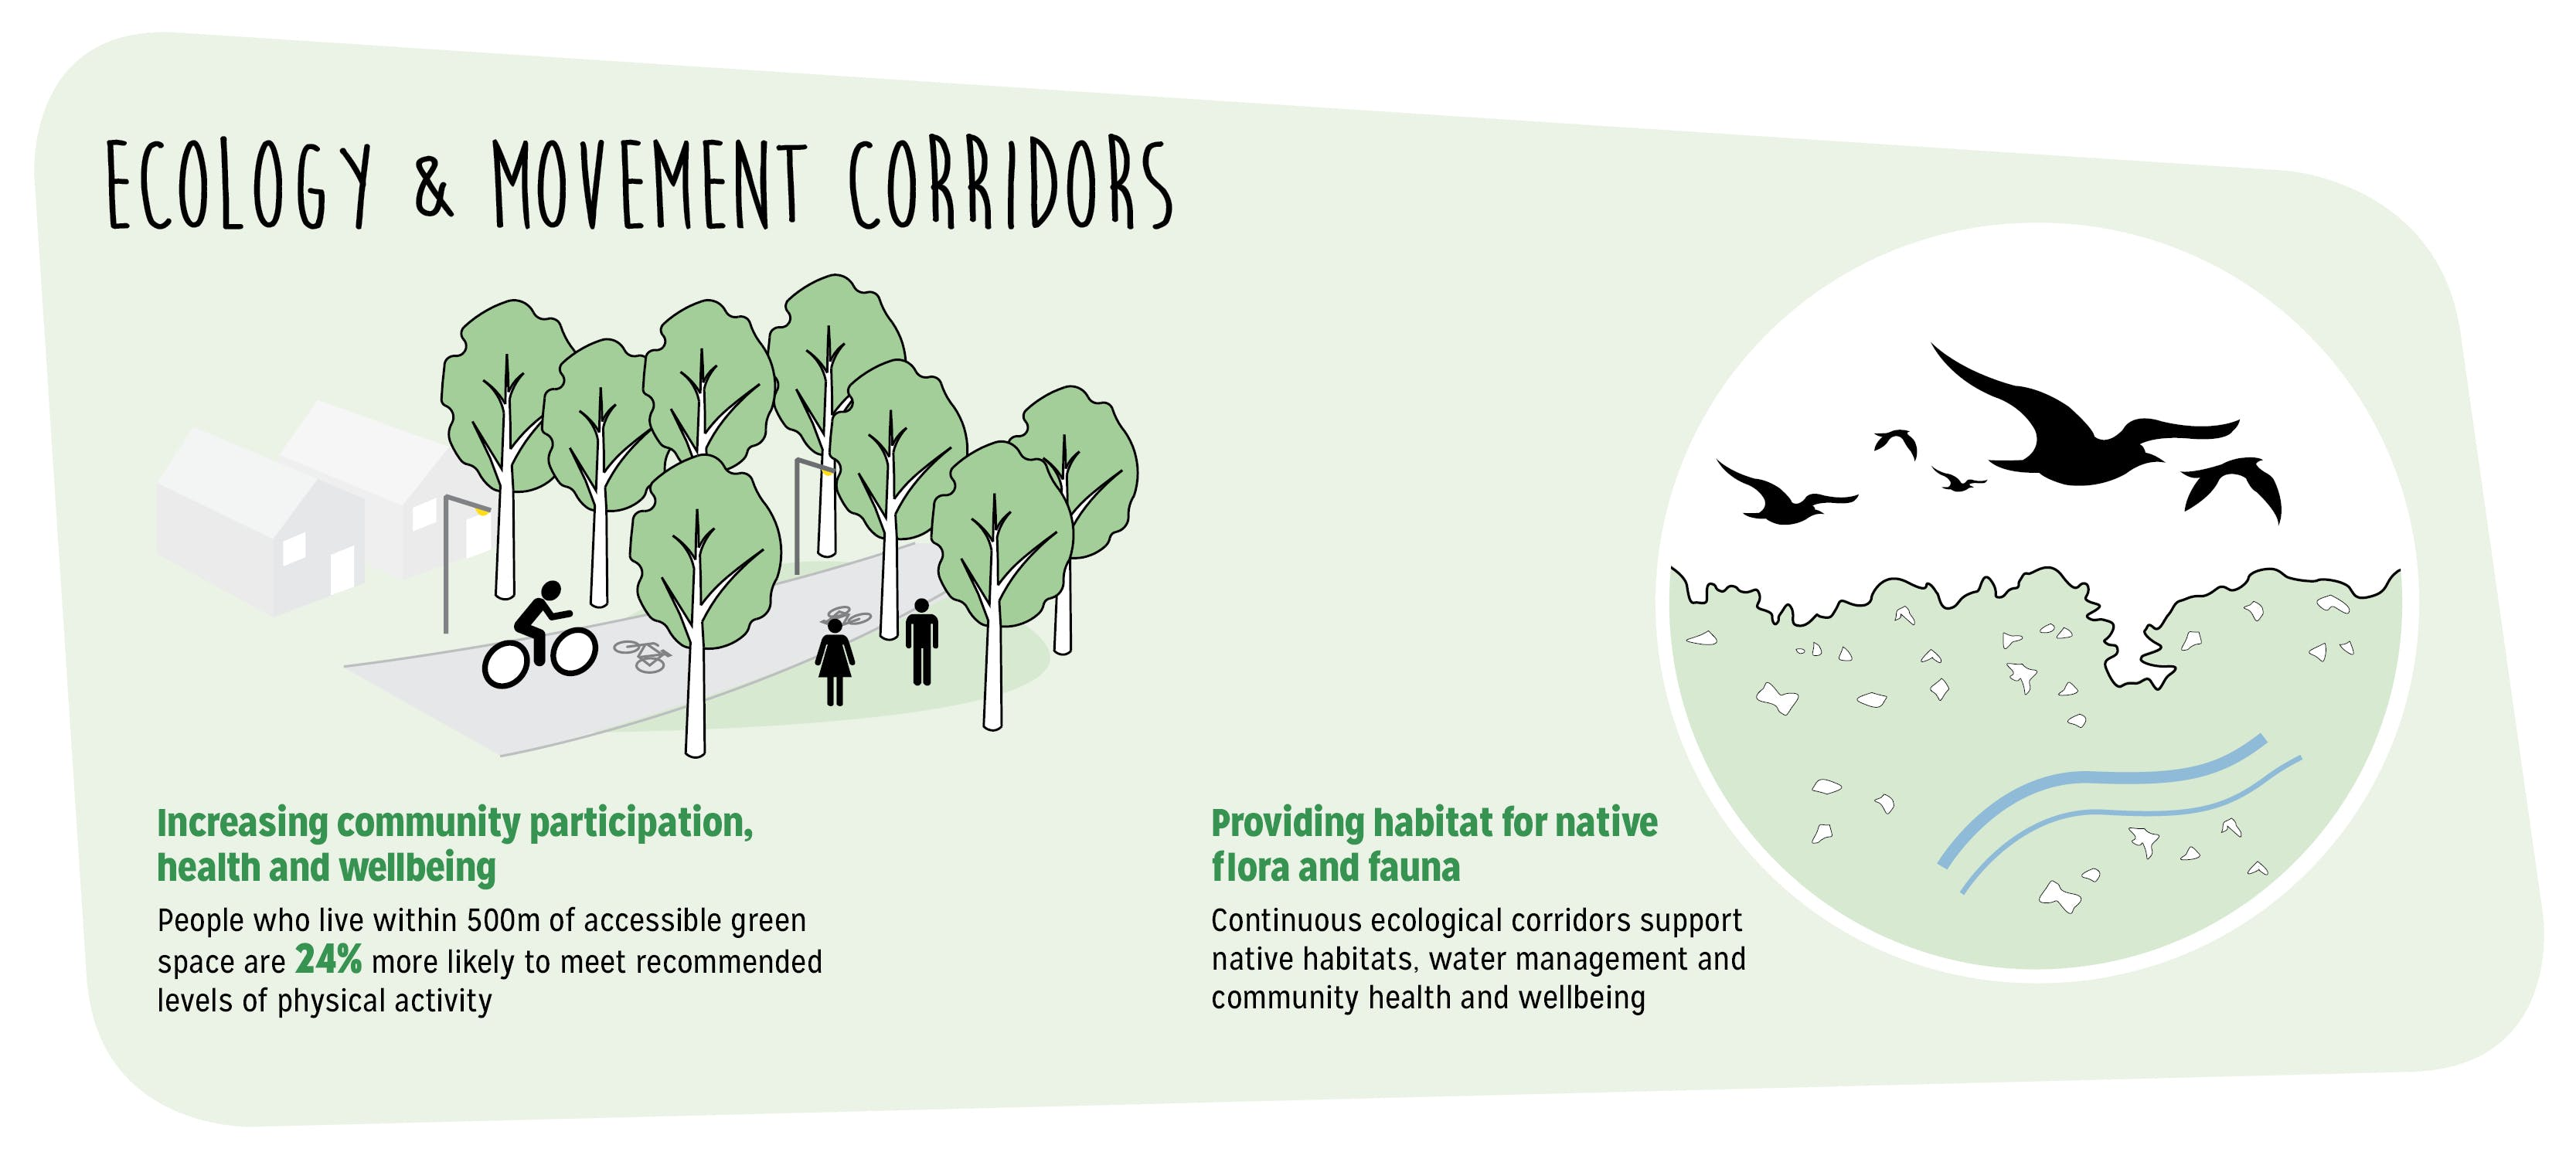 Ecology and movement corridors